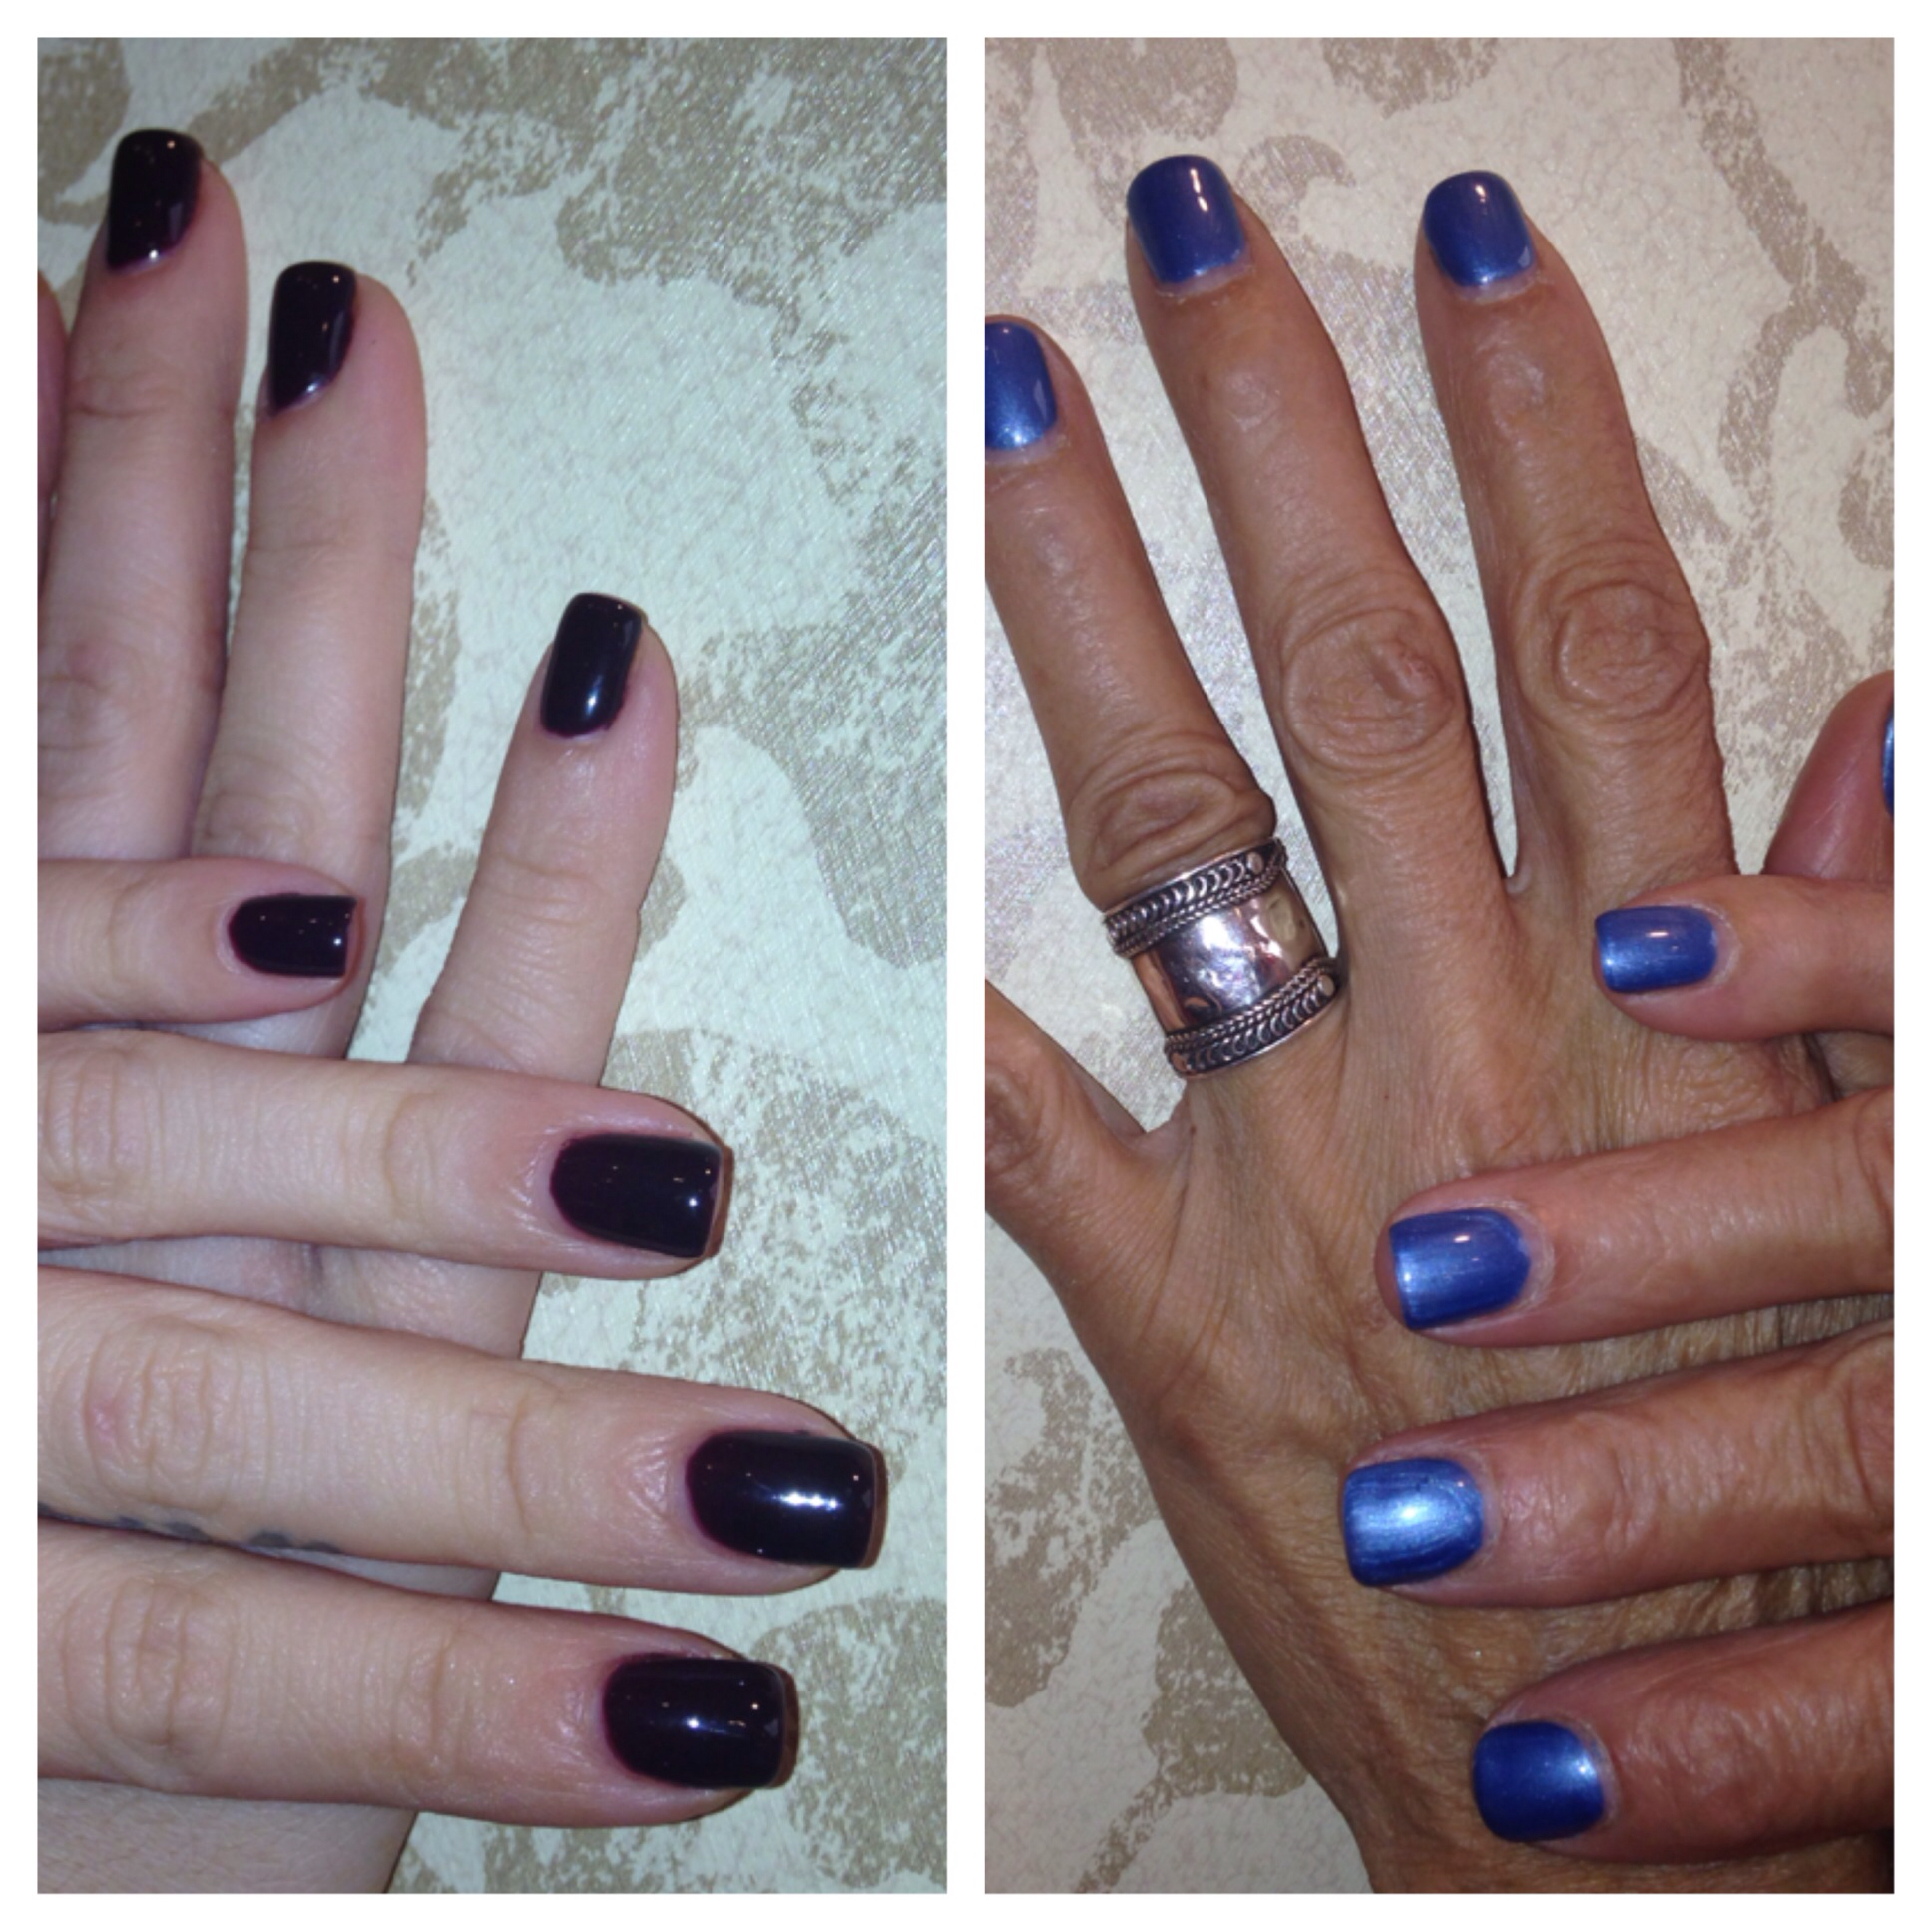 Gel vs. Shellac? Which Manicure is Better? Available at Iluminada